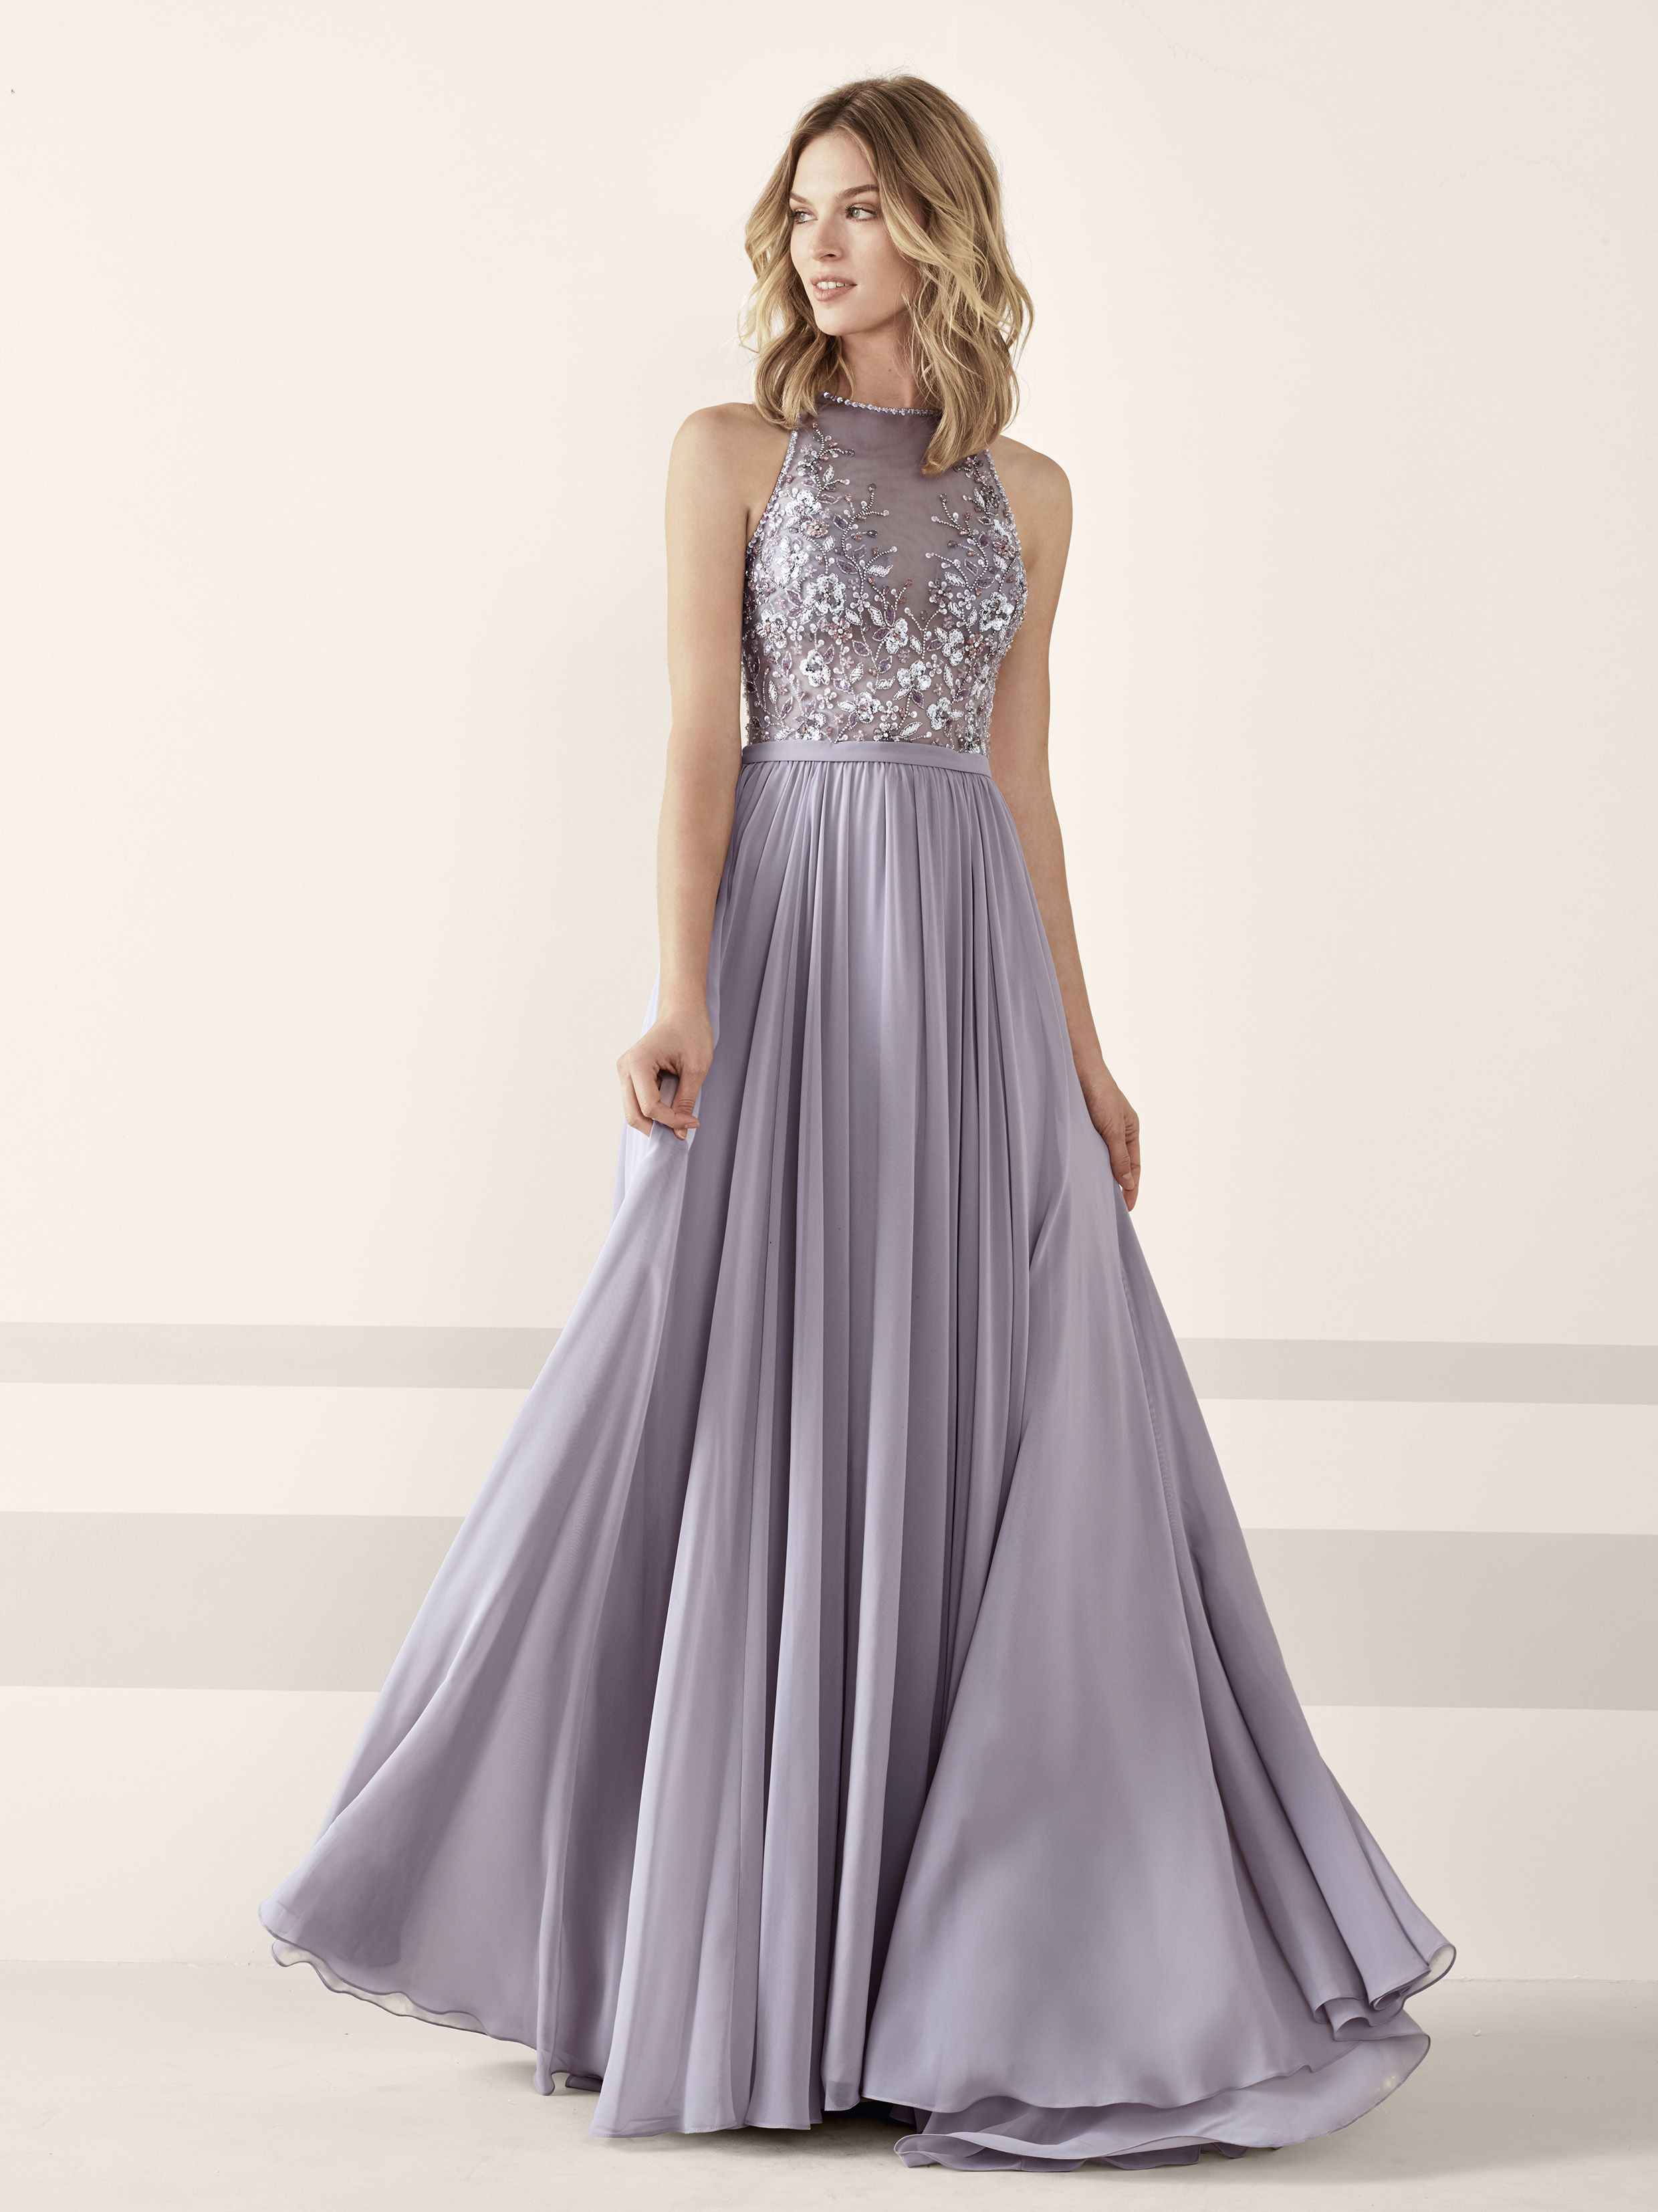 New Pronovias 2019 Party Collection dresses and gowns. Read on to see all  the amaxing designs! Nueva colección fiesta Pronovias 2019. c8a451e4a377